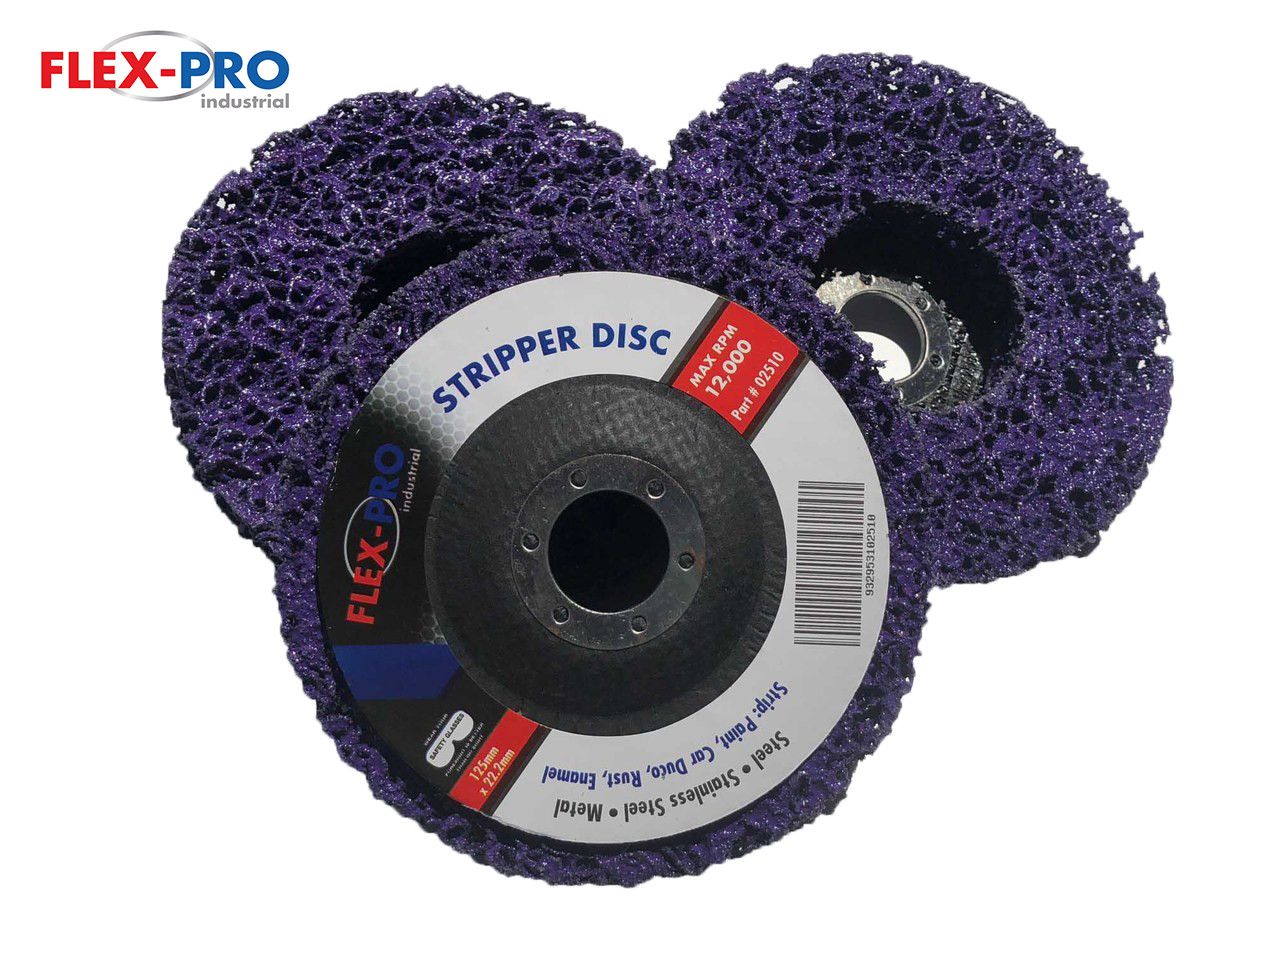 "Stripper discs  paint remover disc 5"" (125mm) x 3pc pack TRADE QUALITY"